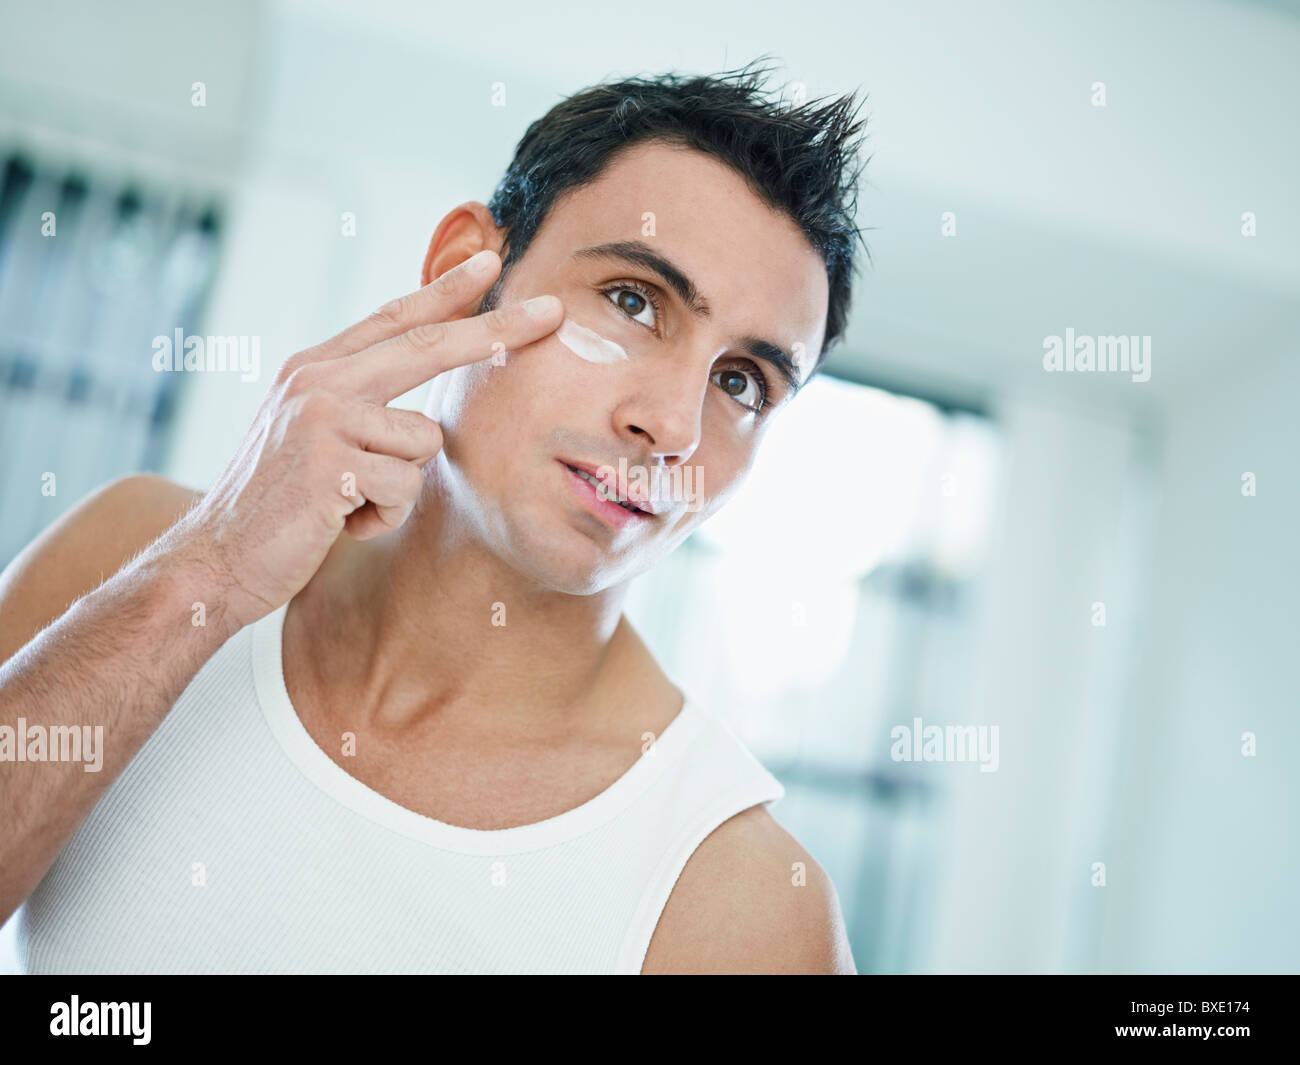 young caucasian man applying eye cream on face. Horizontal shape, front view, head and shoulders - Stock Image